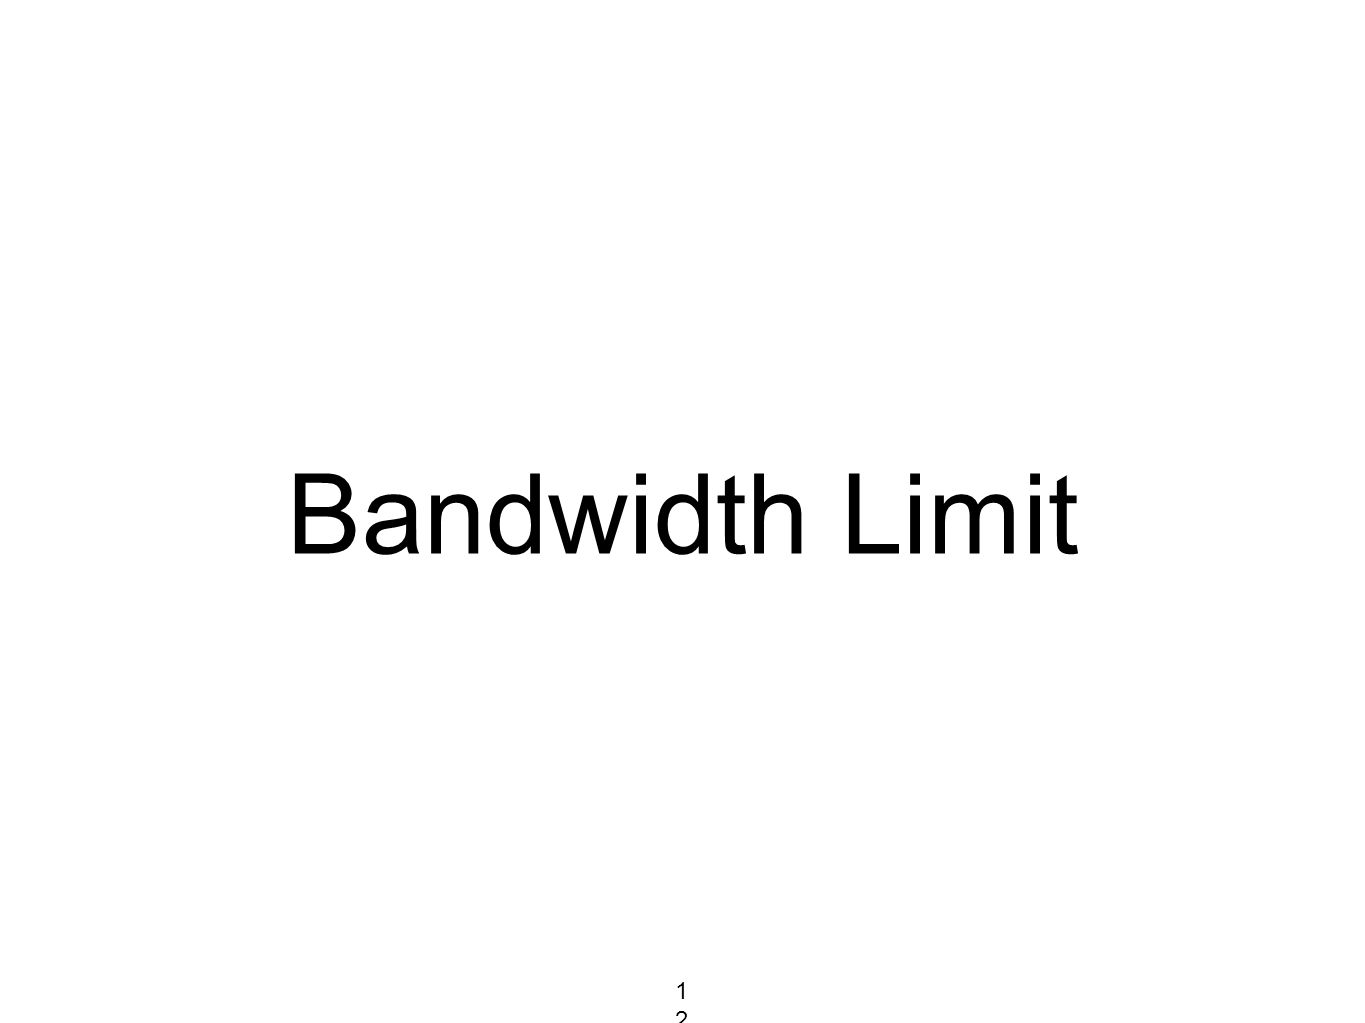 Bandwidth Limit 127127127